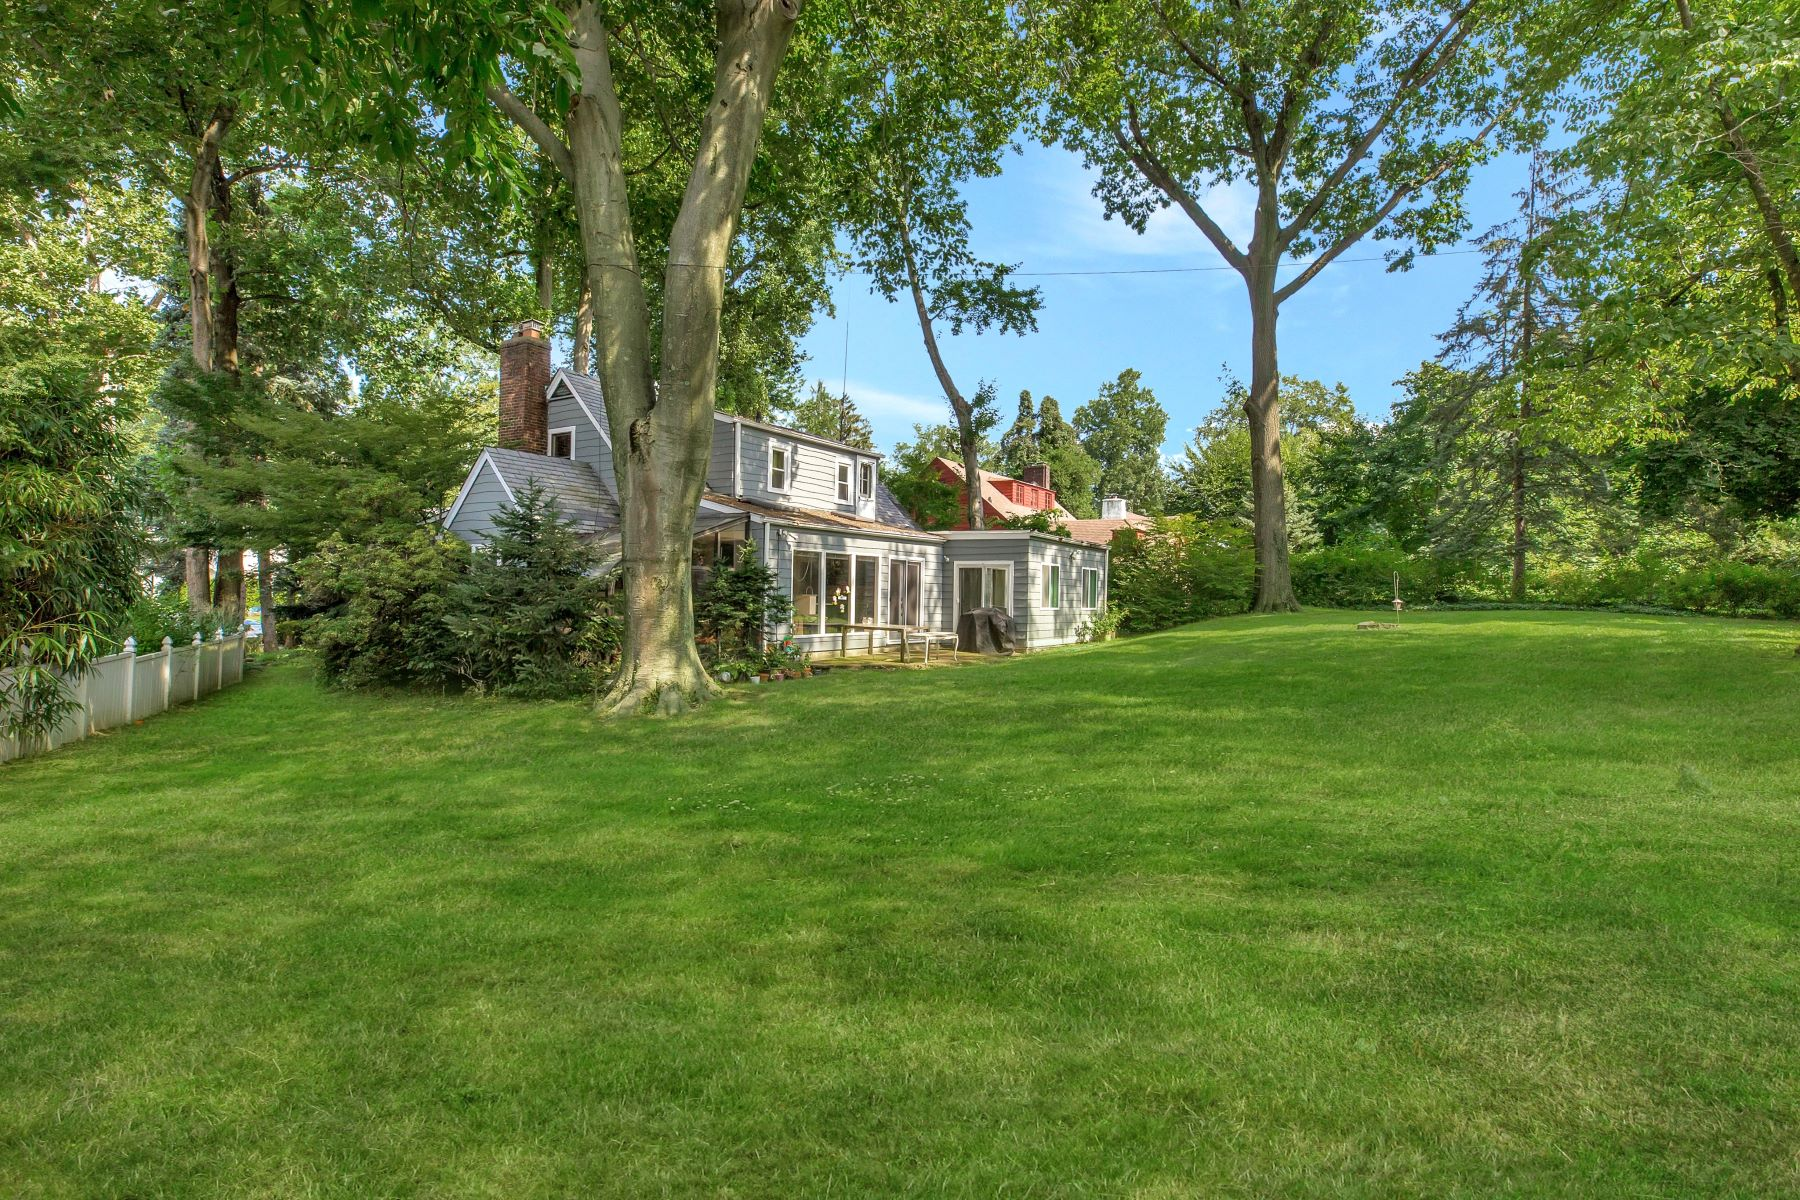 Single Family Home for Sale at 21 Ascot Ridge Rd , Great Neck, NY 11021 Great Neck, New York, 11021 United States